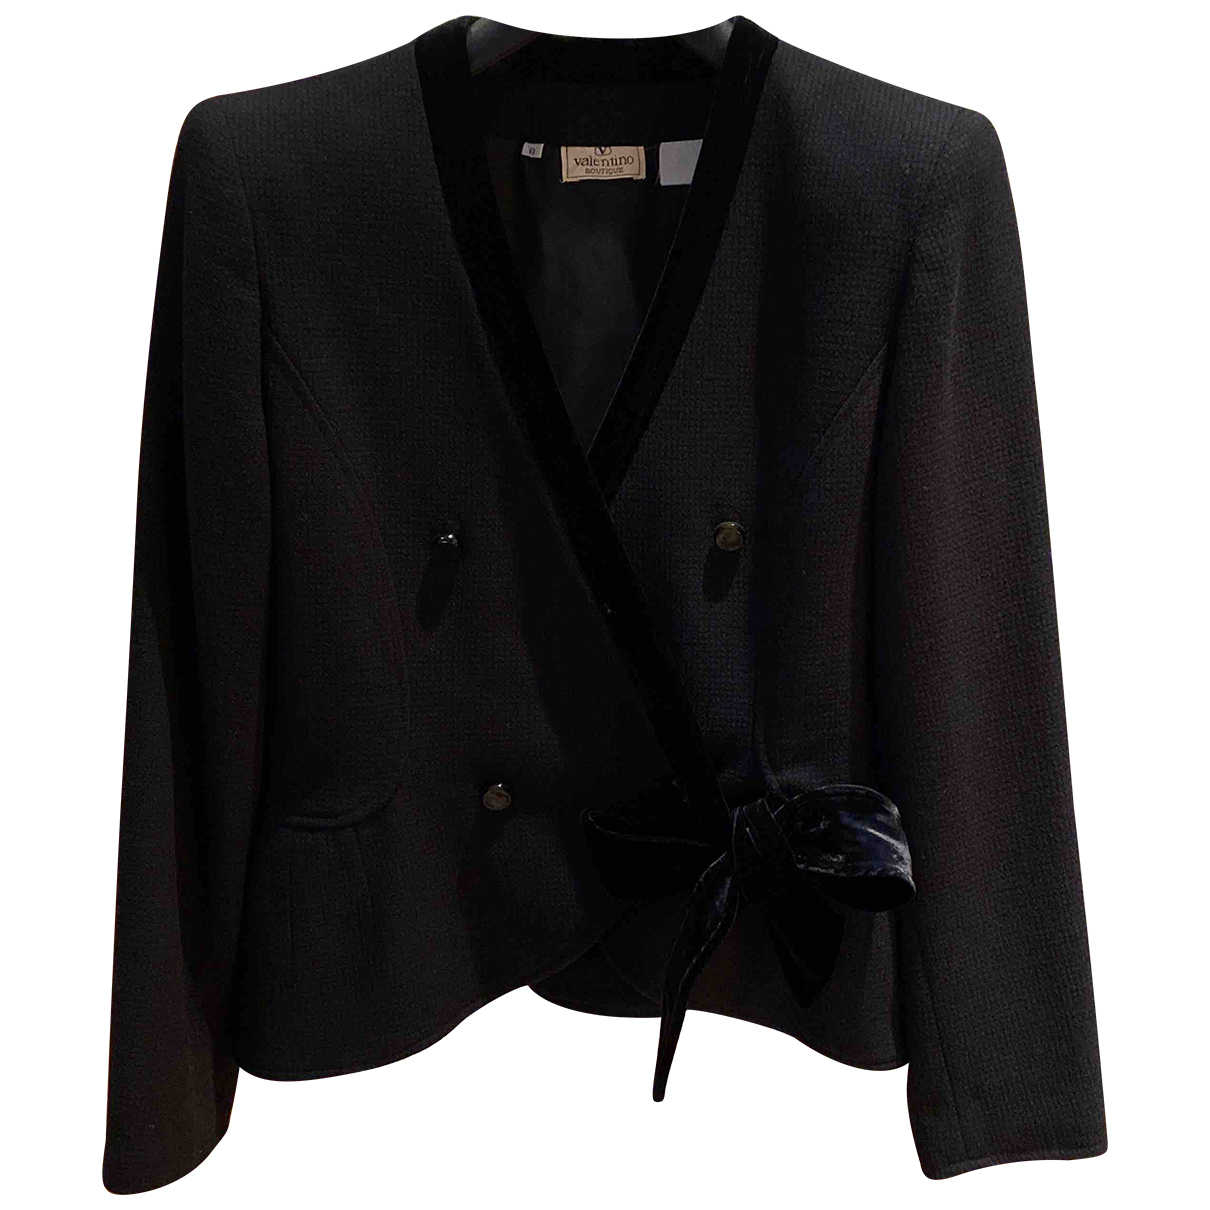 Valentino Garavani N Black Wool jacket for Women 8 UK